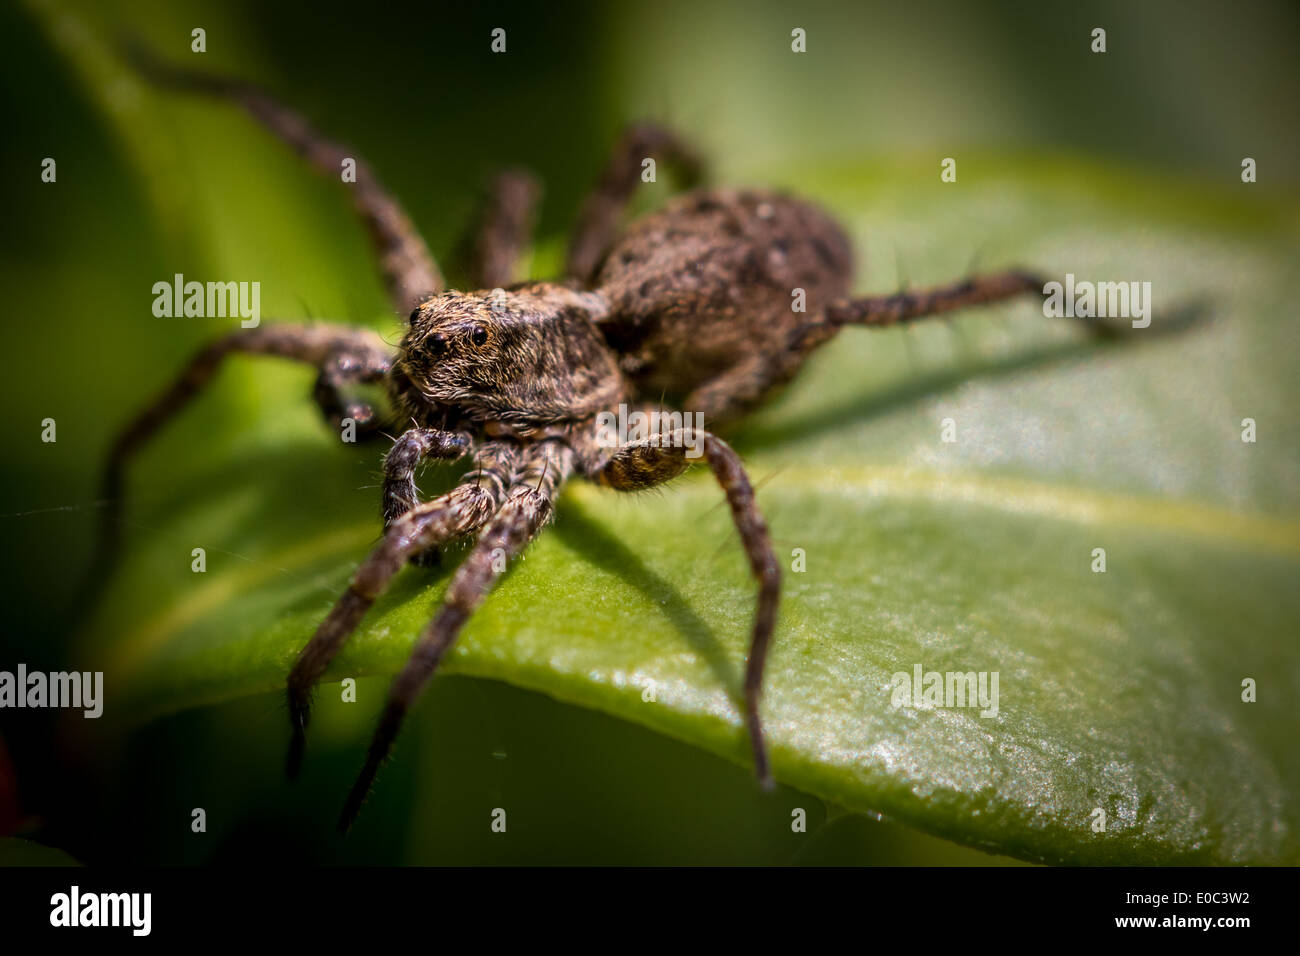 Spotted wolf spider (Pardosa amentata) Uk - Stock Image